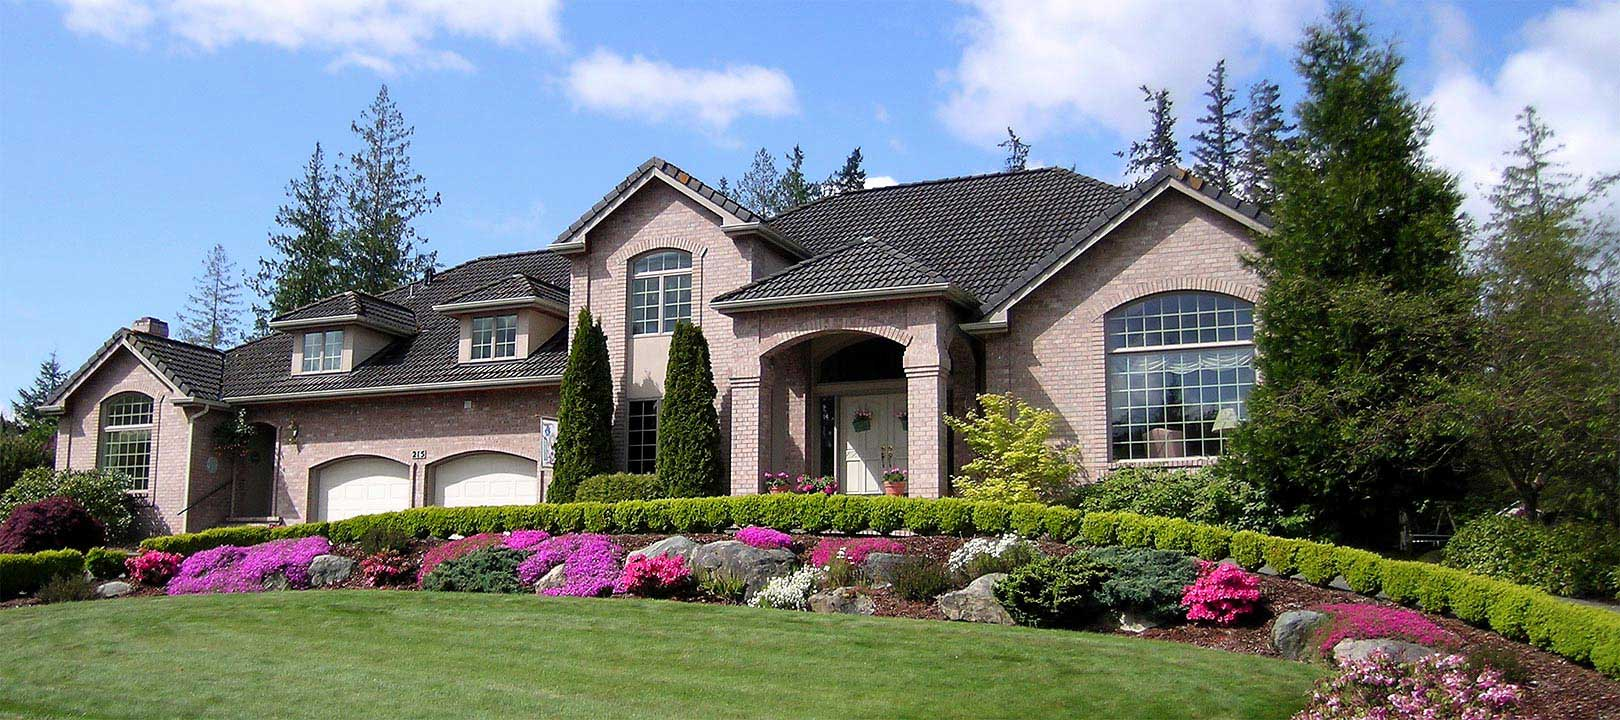 Homes for sale michigan real estate listings american for Building a home in michigan